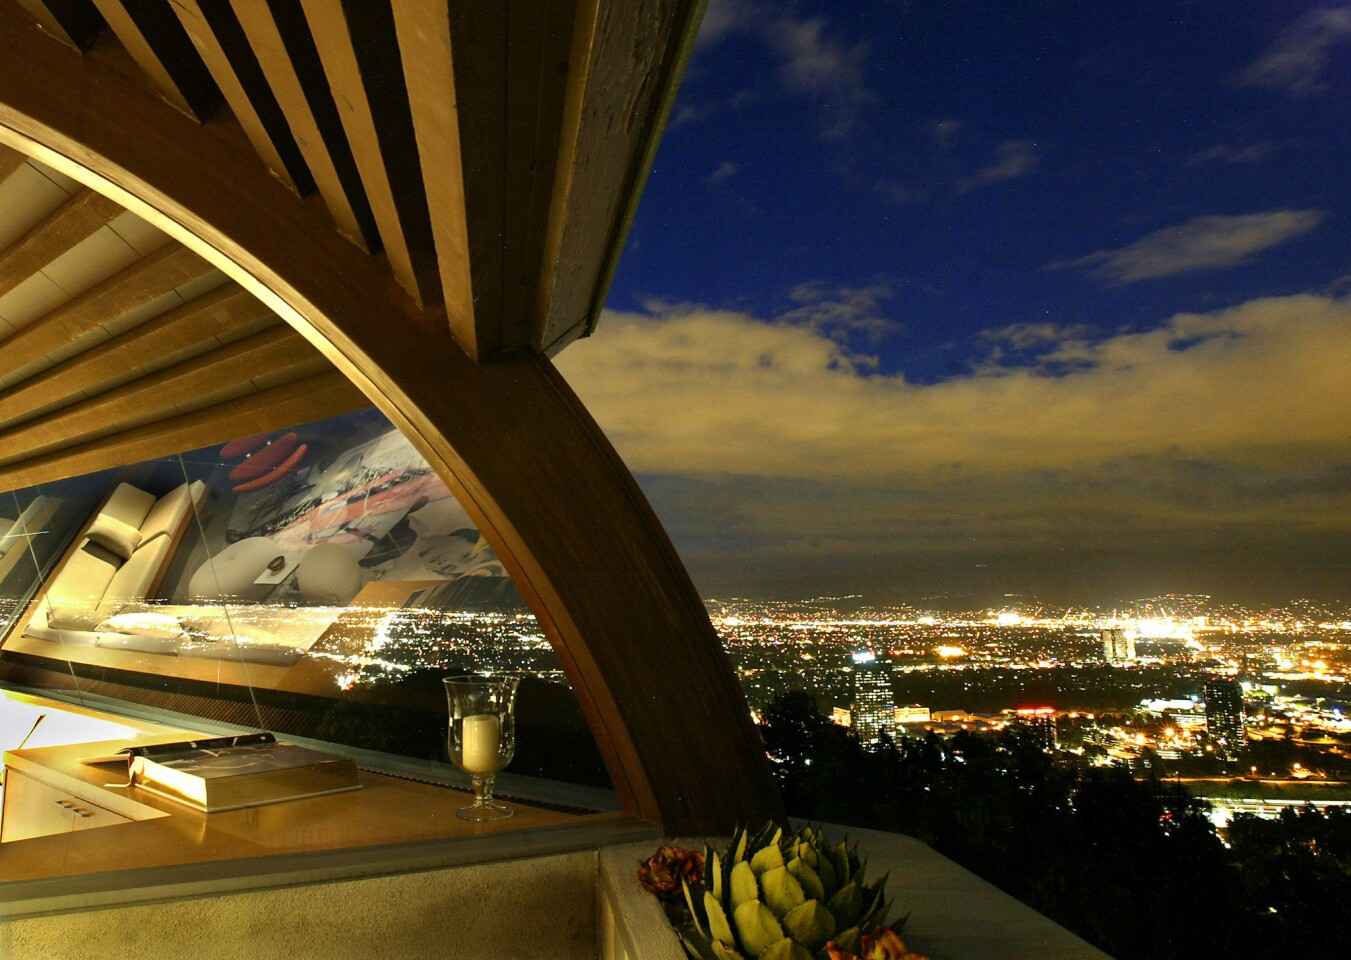 Chemosphere's panoramic windows open up to views of the San Fernando Valley; the other side of house faces a quiet hillside, a scene that can almost feel like a nature preserve.